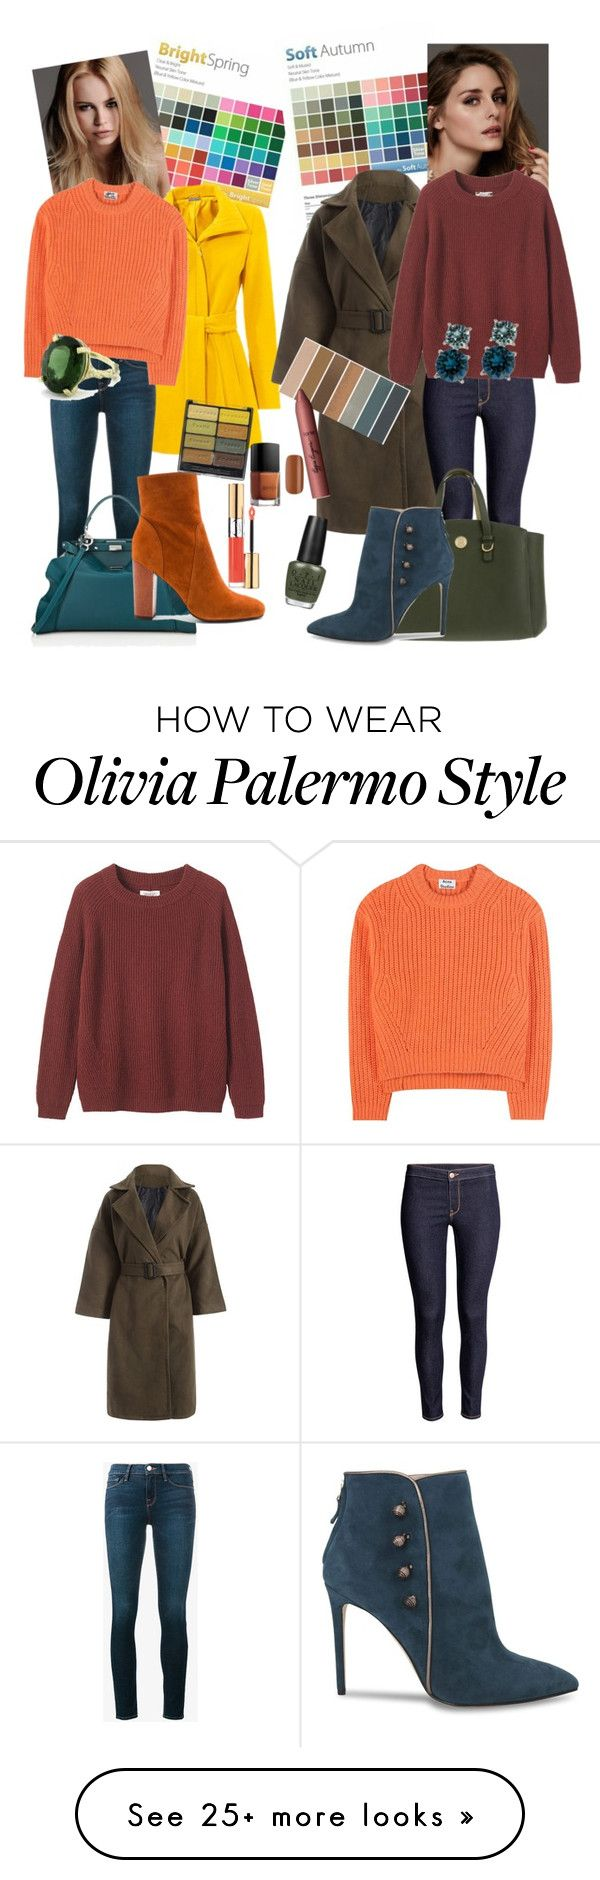 """This is for the warm blondes"" by confusioninme on Polyvore featuring KAROLINA, Frame Denim, Beauty Secrets, Acne Studios, Toast, Fendi, 10 Crosby Derek Lam, Tommy Hilfiger, Black Radiance and Yves Saint Laurent"